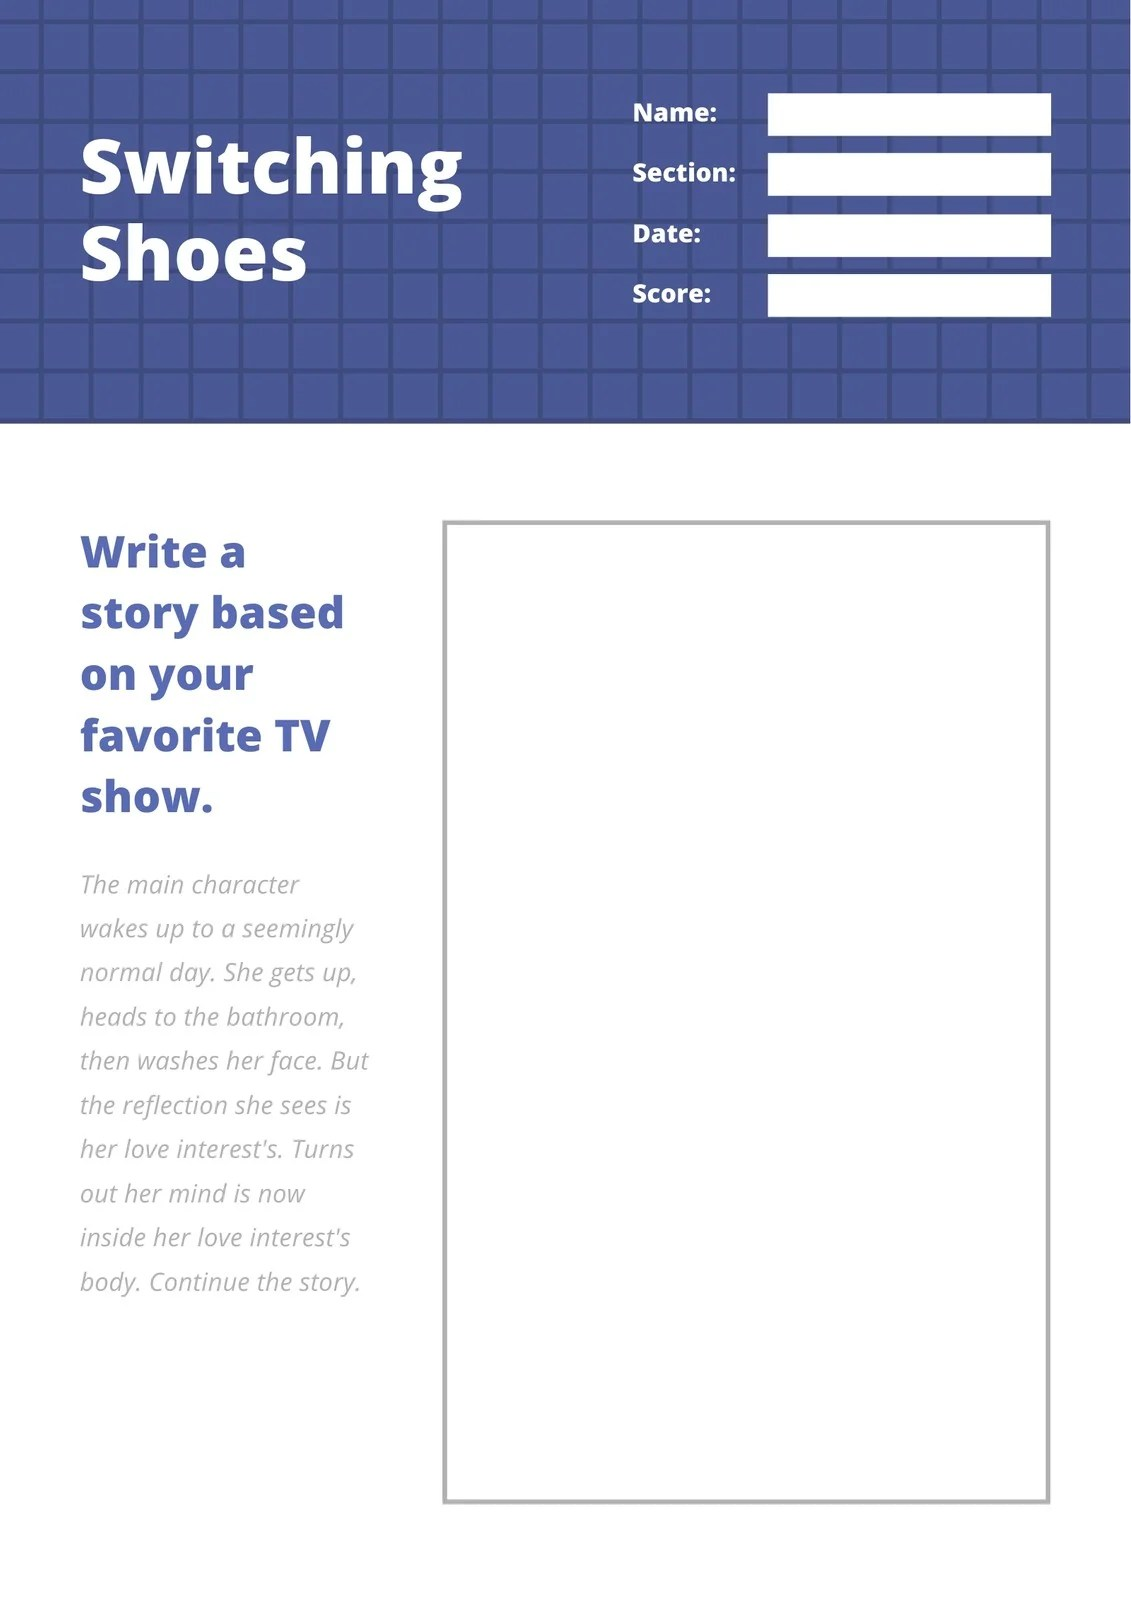 Blue And Grey Fanfiction Grid Writing Prompt Worksheet